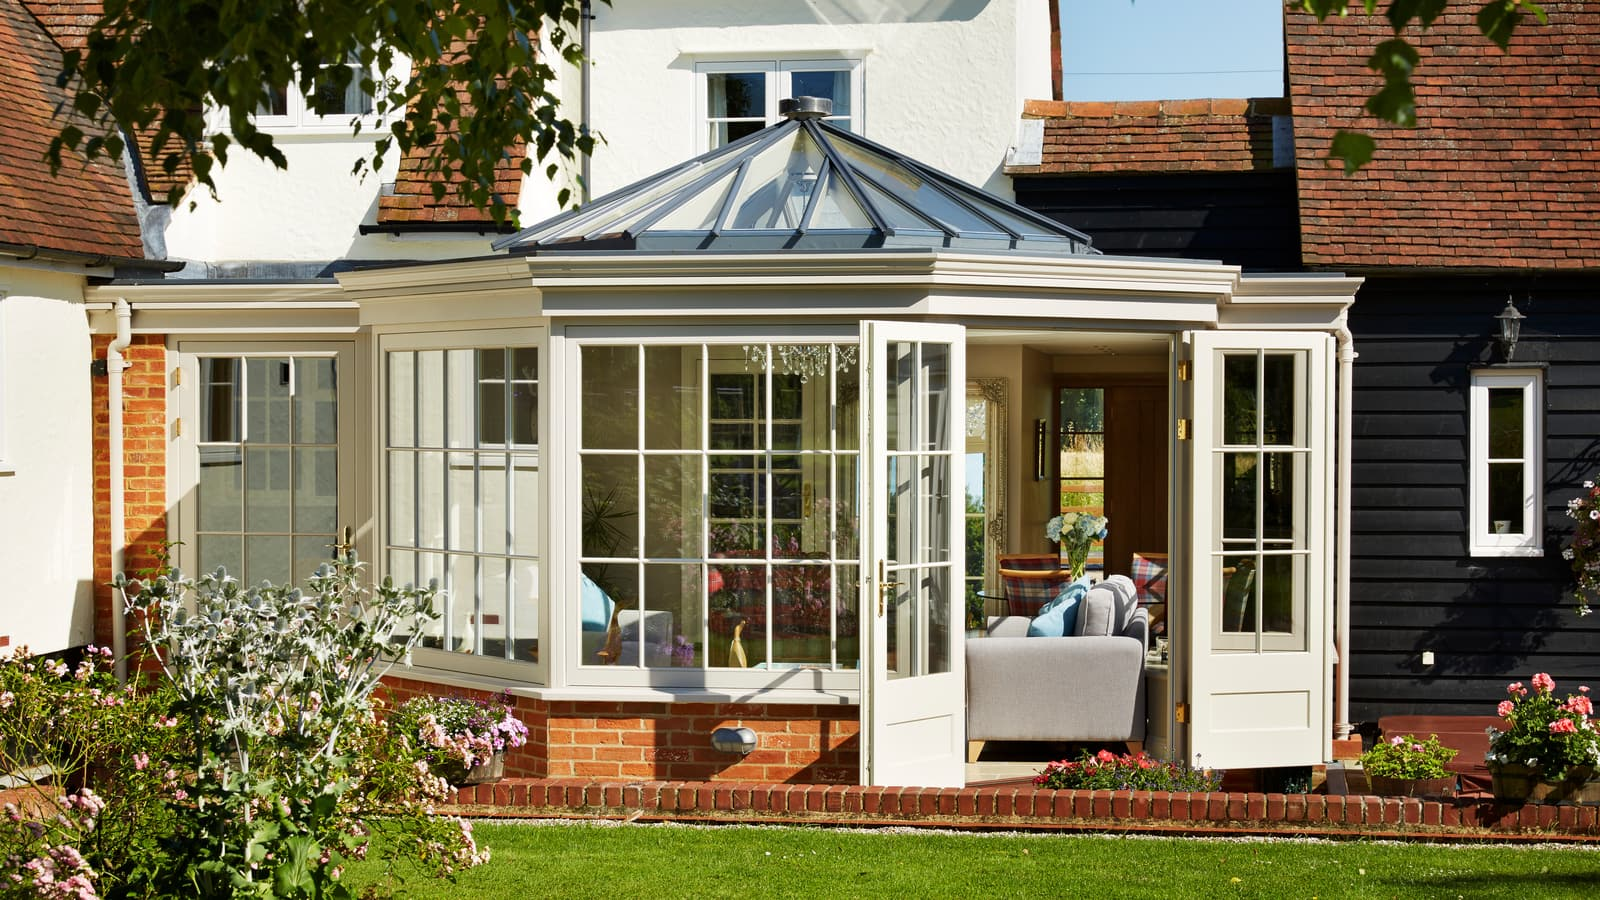 Large conservatory extension listed building